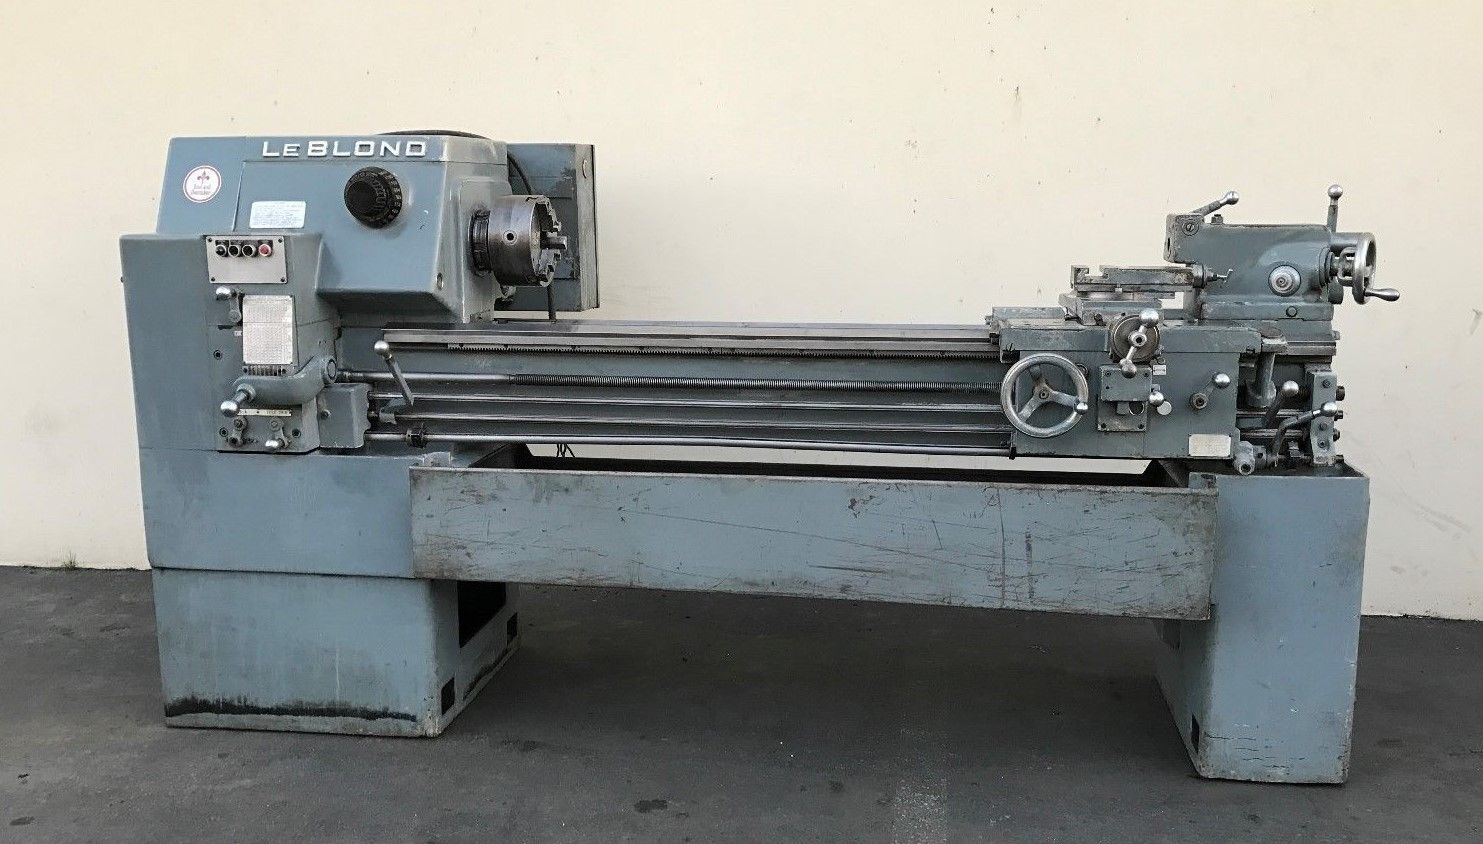 leblond-tool-die-maker-14×54-geared-head-engine-lathe-main